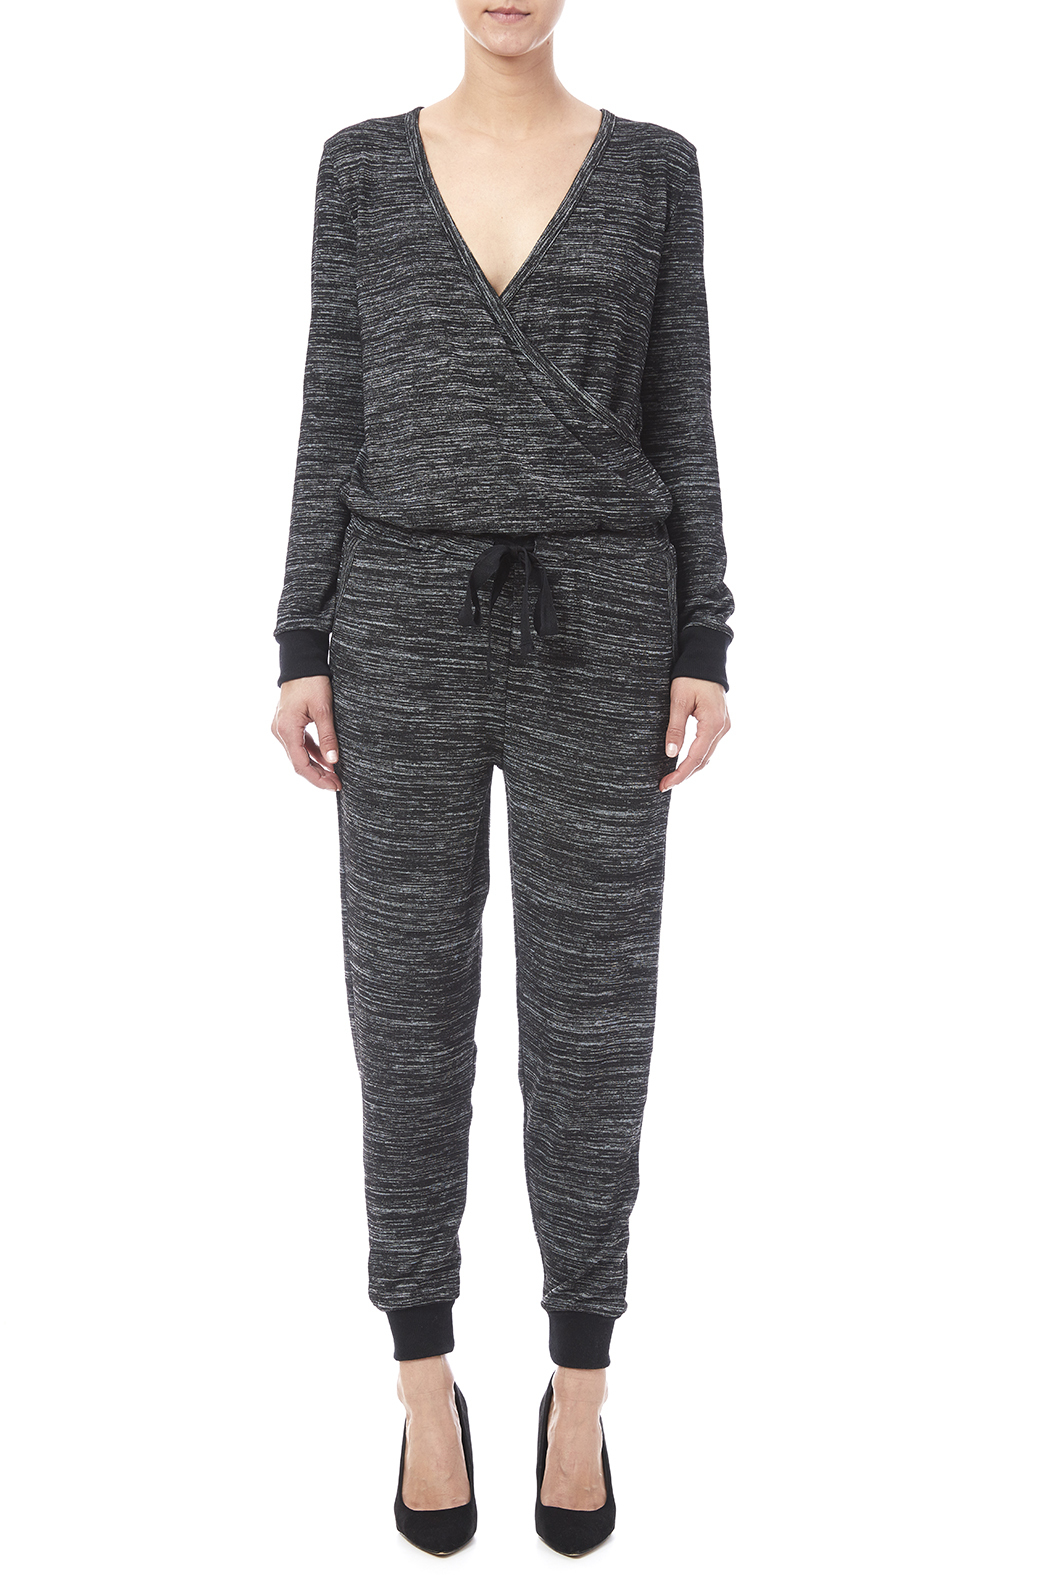 RD Style Trackie Jumpsuit - Front Cropped Image